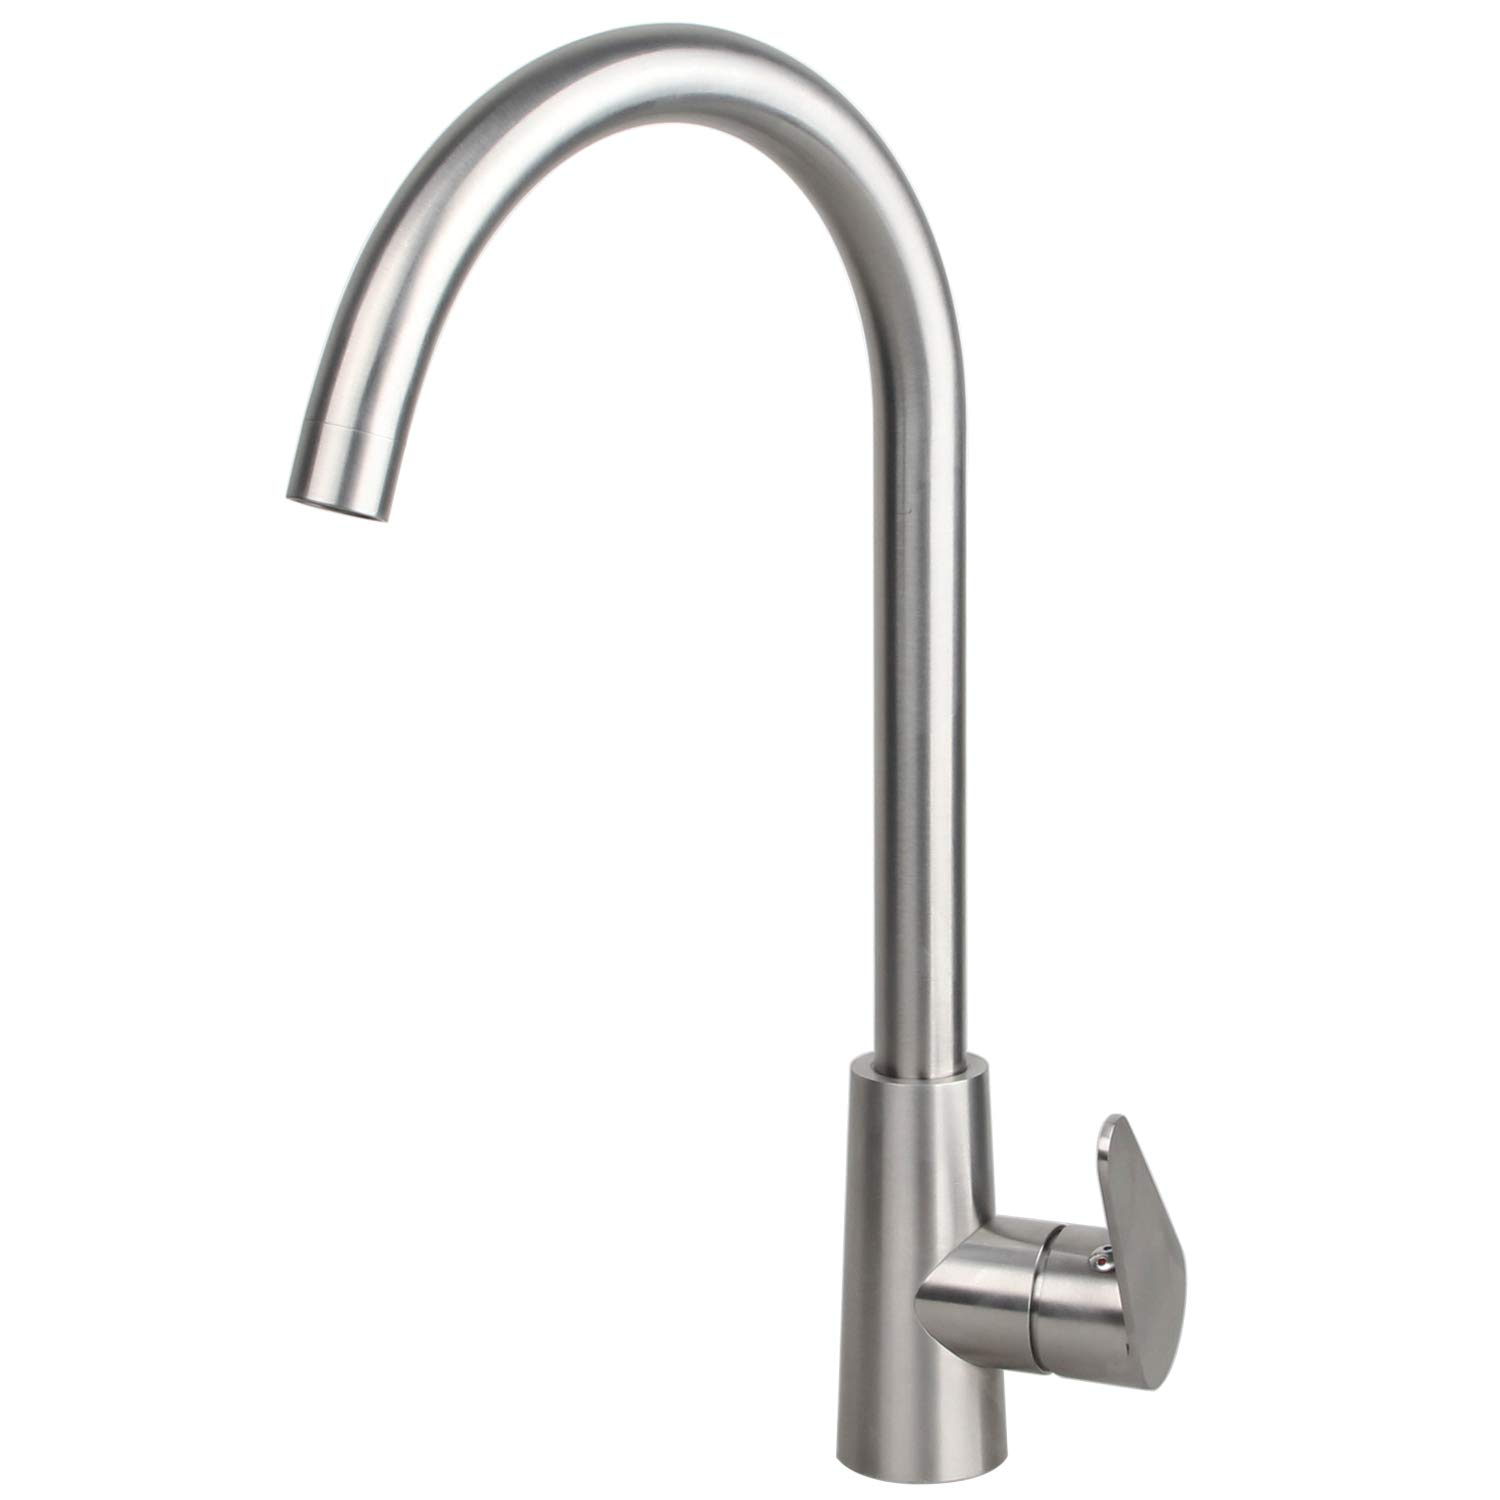 Kitchen Sink Mixer Tap Stainless Steel Brushed Nickel Single Lever 360 Degree Swivel Spout With Hoses And Fittings Buy Online In India At Desertcart